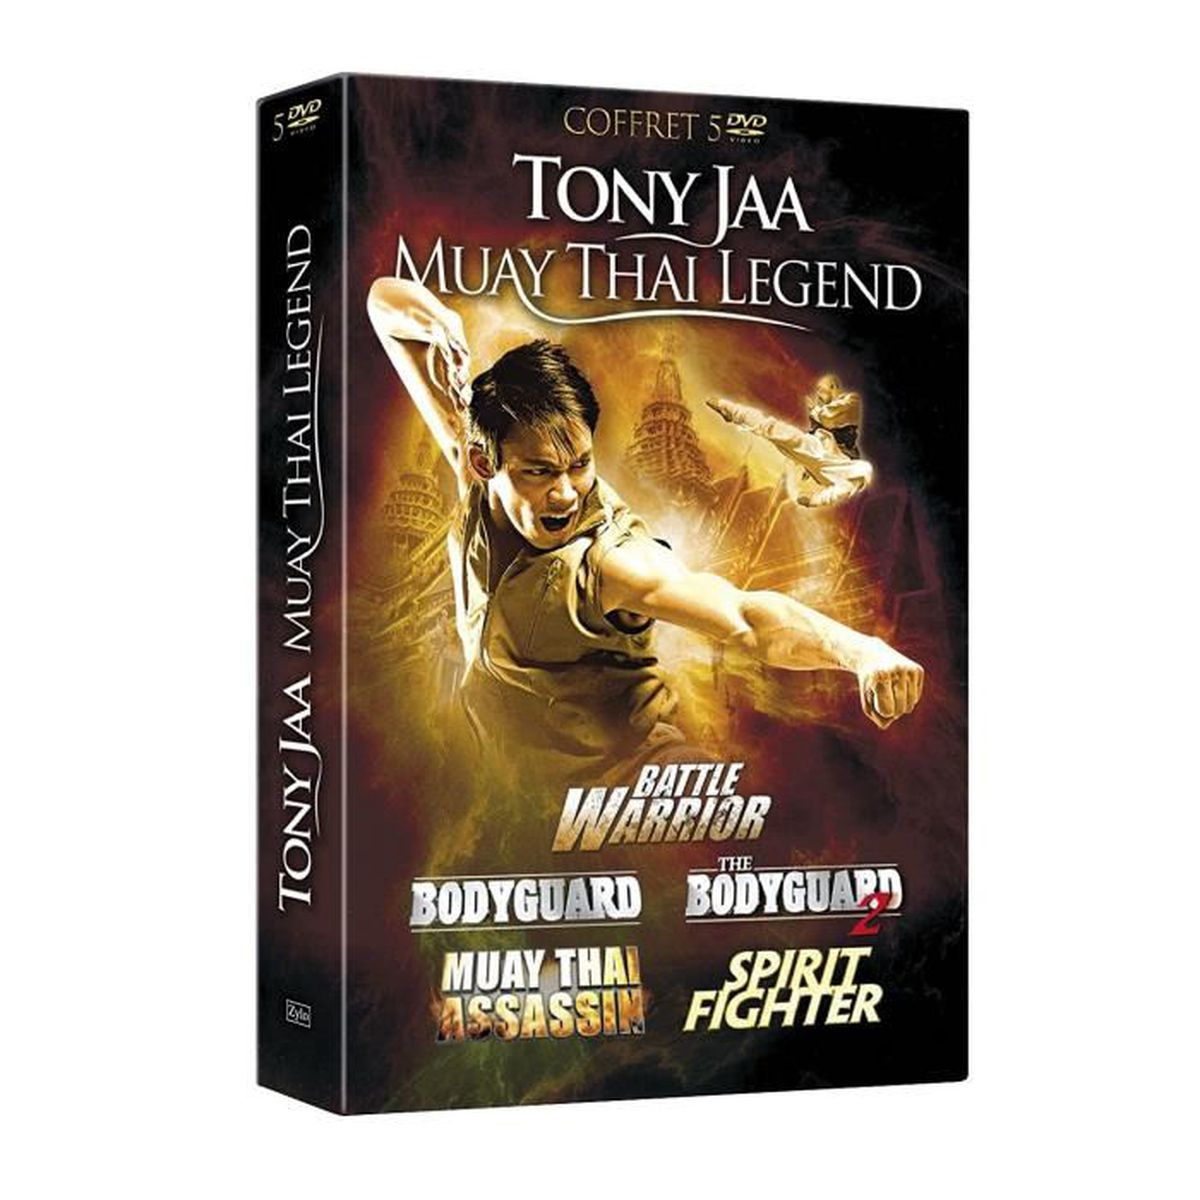 Jaa Cool tony jaa coffret 5 dvd : bodyguard+bodyguard 2+muay thai assassin+